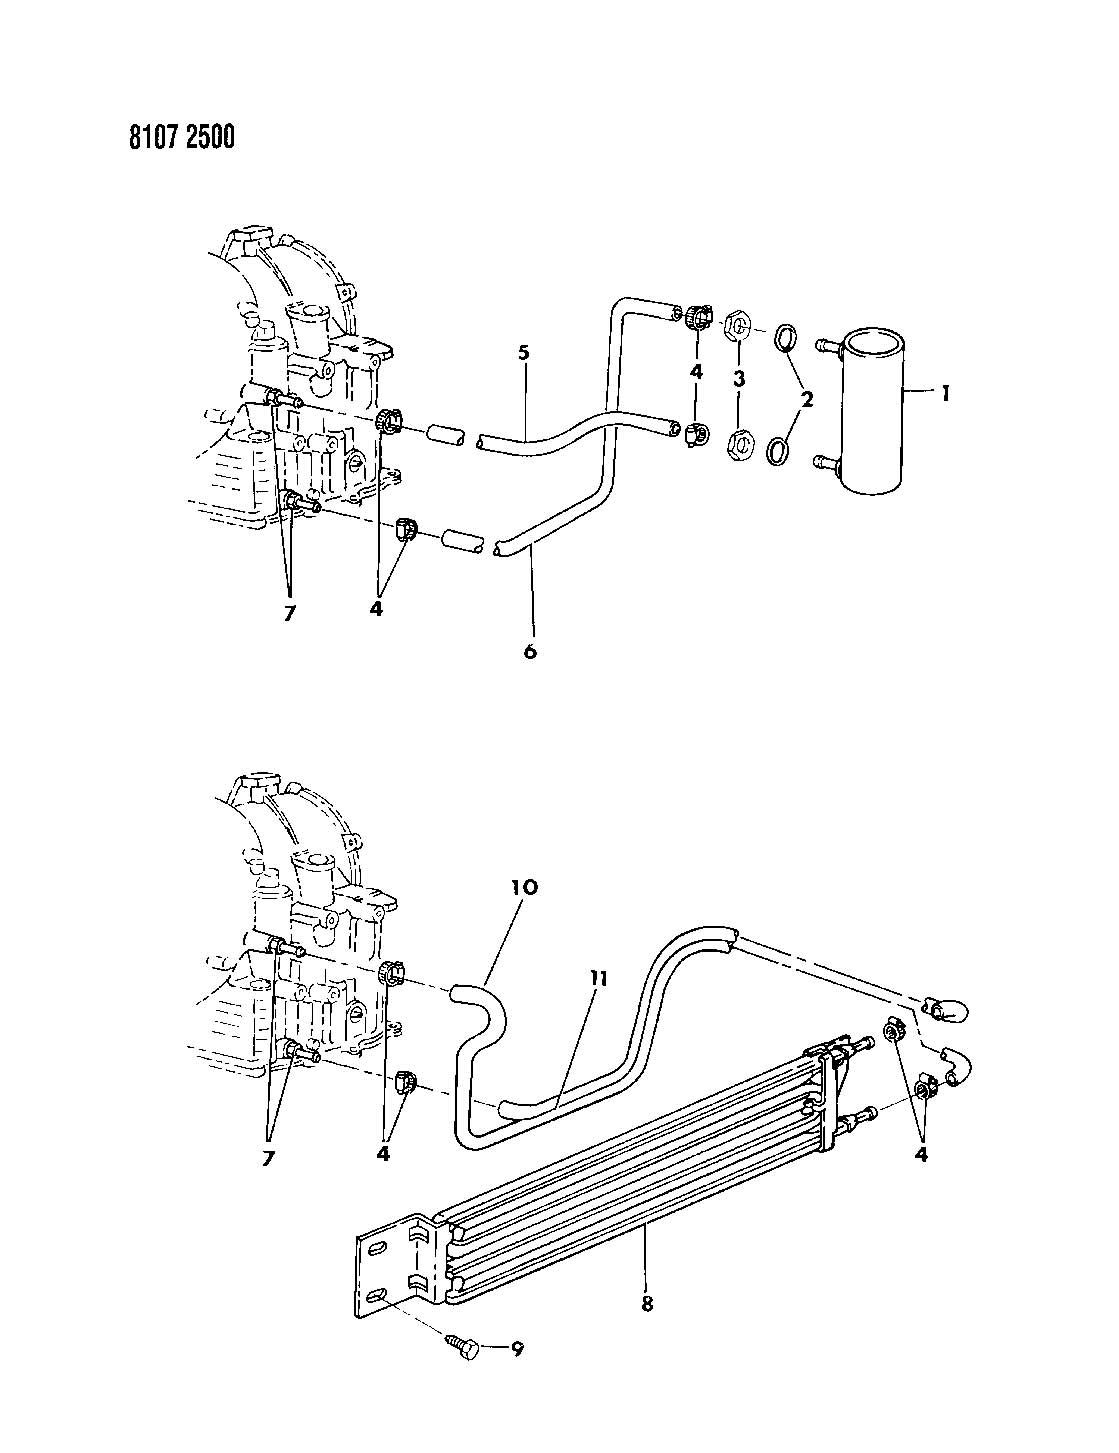 Dodge Transmission Sensor Location in addition 1989 Chrysler New Yorker Wiring Diagrams together with 91 Jeep Grand Wagoneer Parts moreover 1992 Dodge Stealth Wiring Diagram additionally Wiring Diagram 1992 Chrysler New Yorker. on dodge dynasty transmission